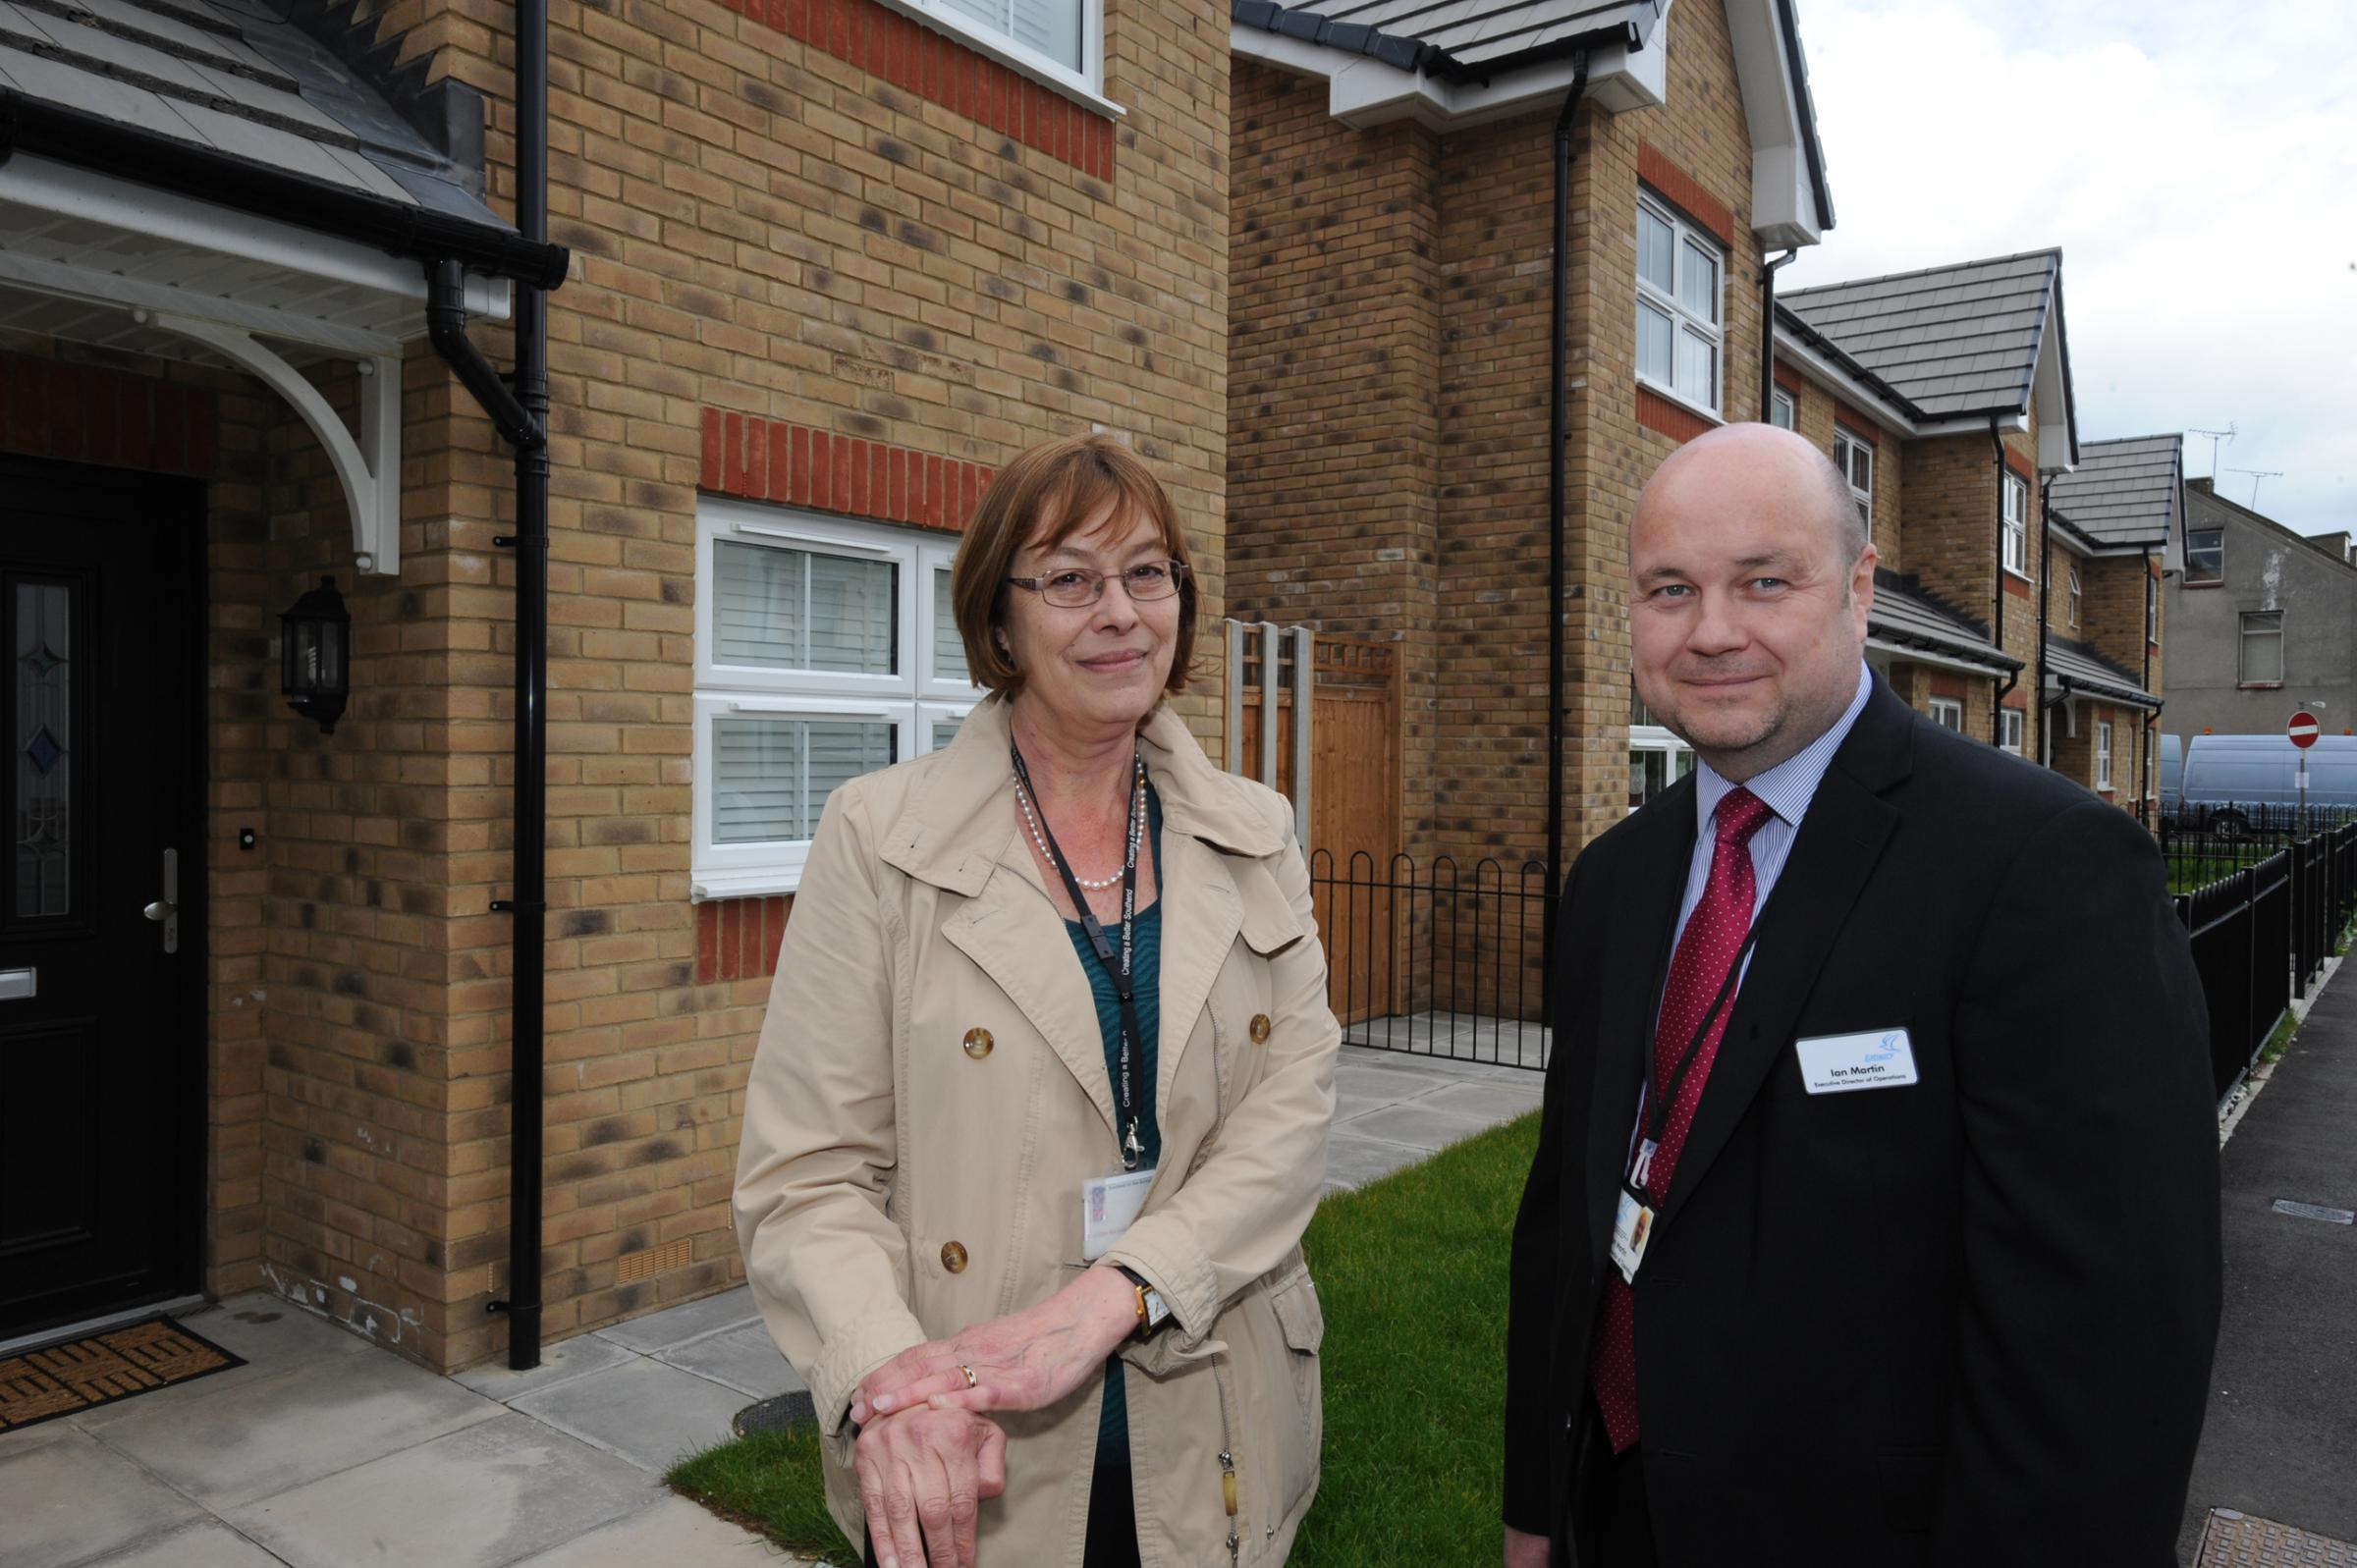 Lesley Salter, Southend councillor responsible for housing, and Ian Martin, executive director of operations of Estuary housing, outside the housing association's new development in Milton Road, Wescliff